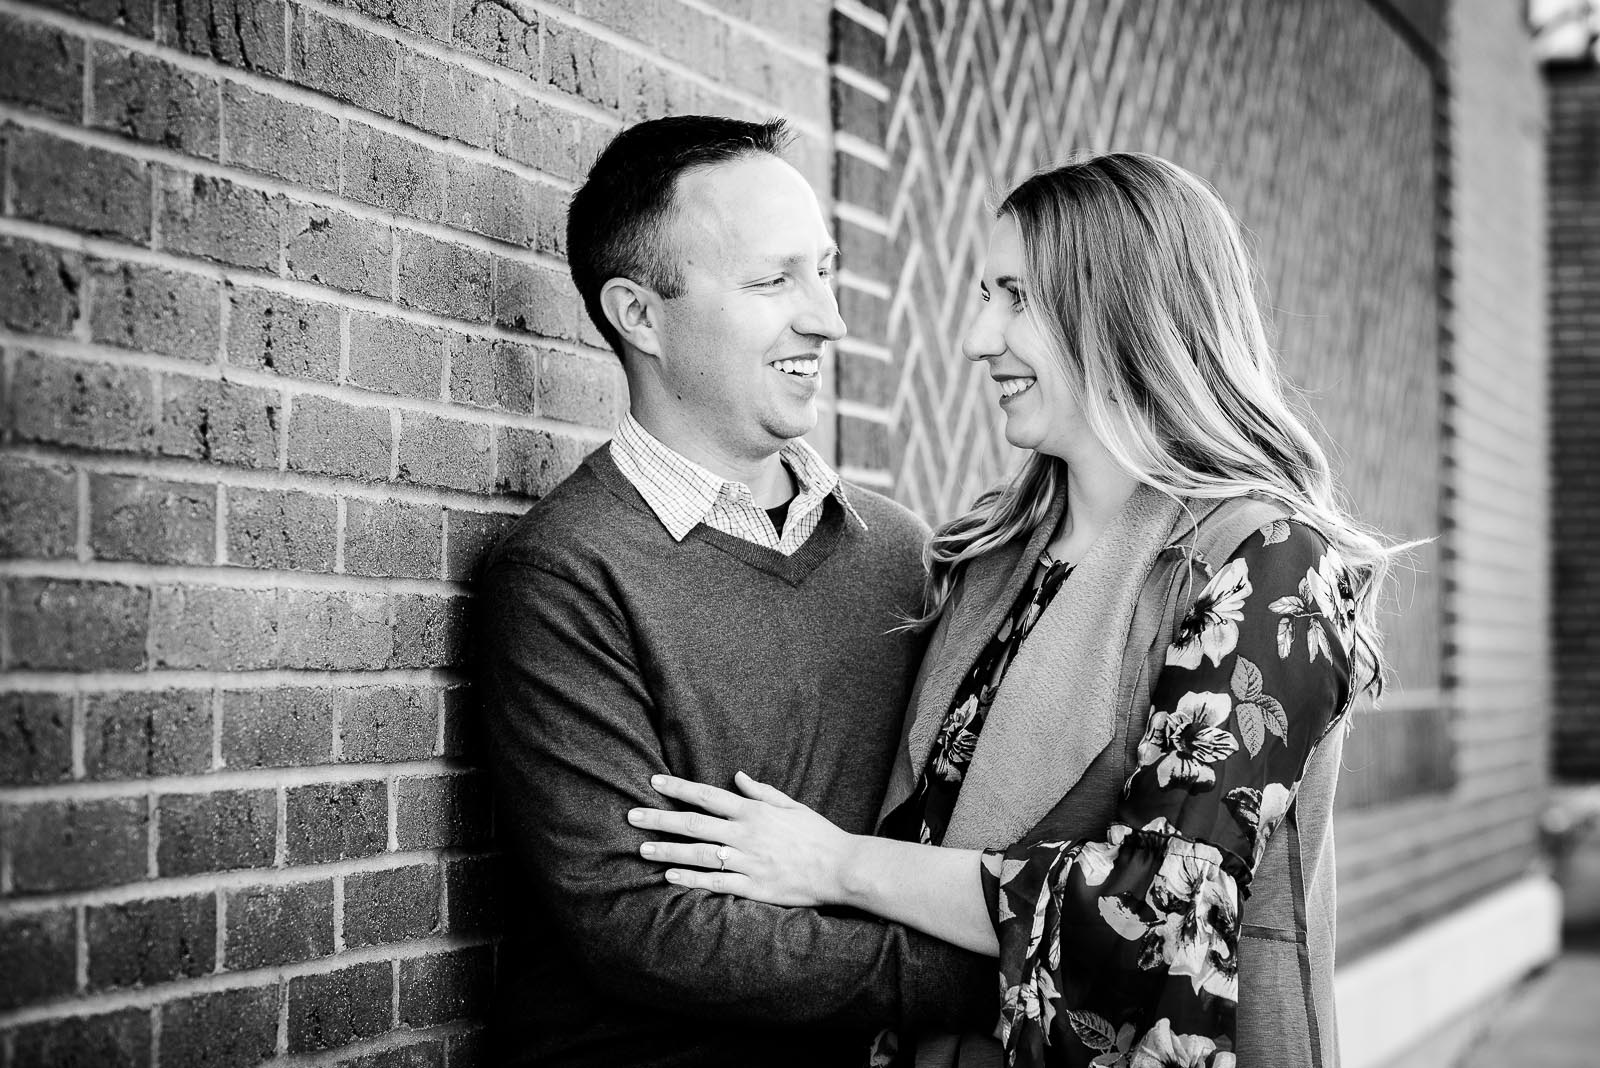 Eric_and_Christy_Photography_Blog_Megan_Nate_Engagement-24